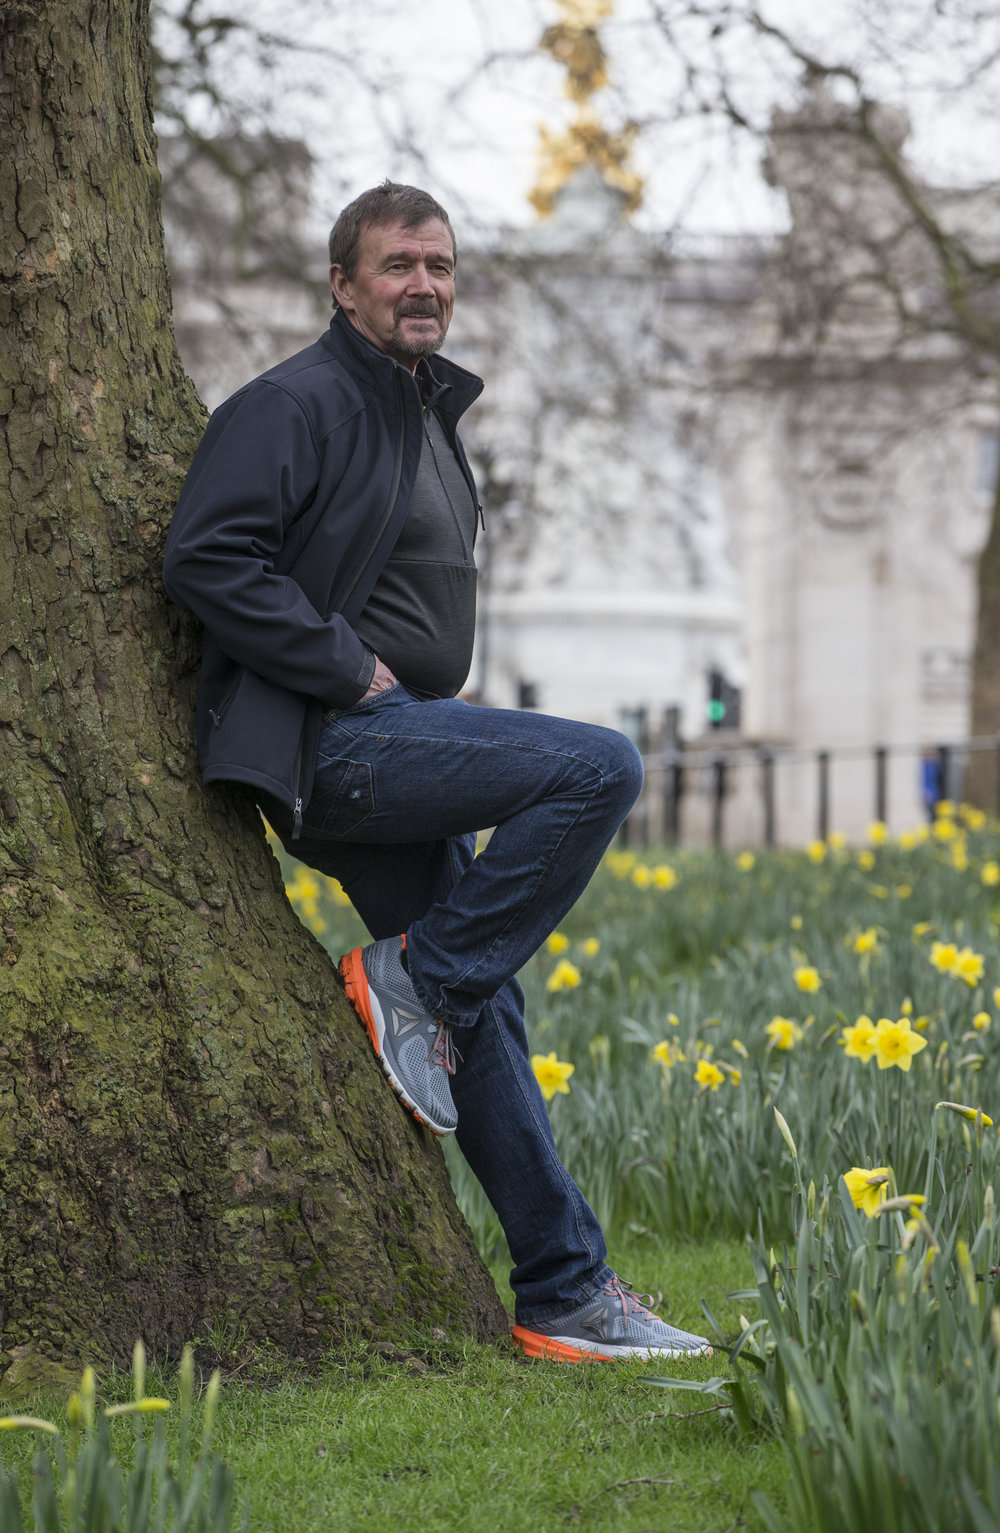 Steve Jones - former world record-holder for the marathon and now successful coach